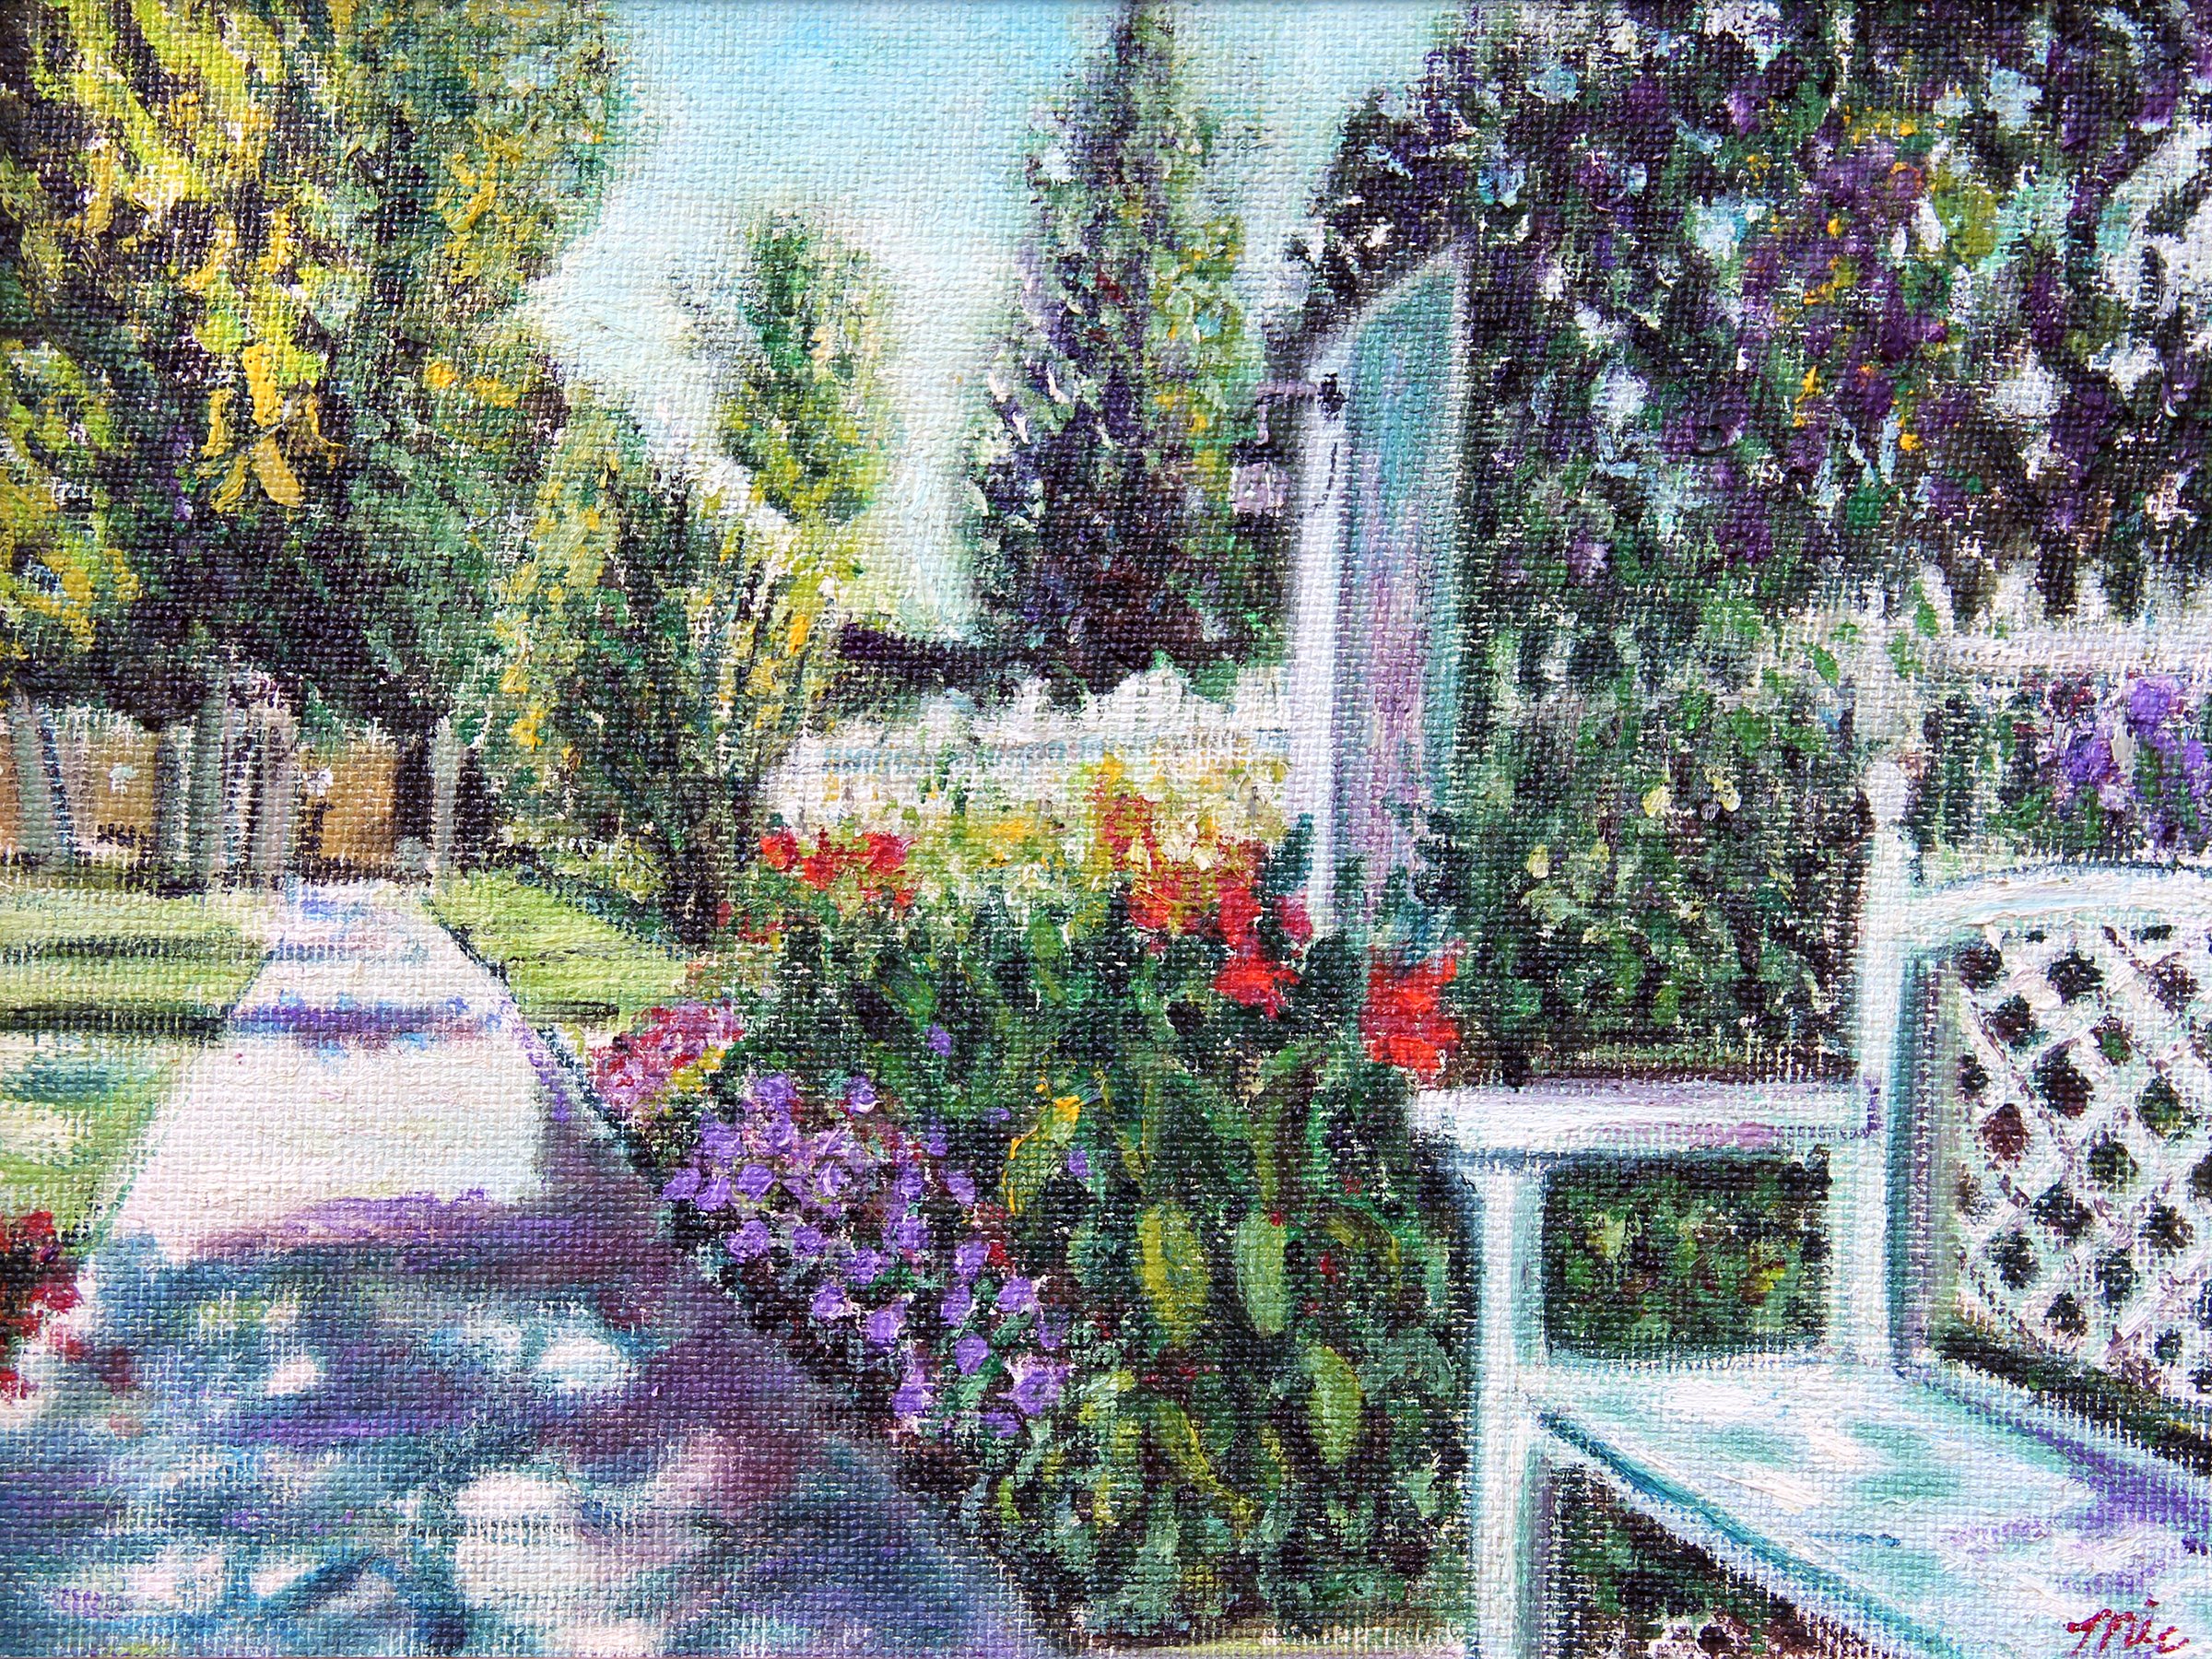 The Garden at the Grand Hotel, Mackanac Island, Michigan - Oil on Italian panel, Private Collection Bob and Marcy Roth.Giclee Limited Edition and canvas prints are available. Please visit the prints gallery.